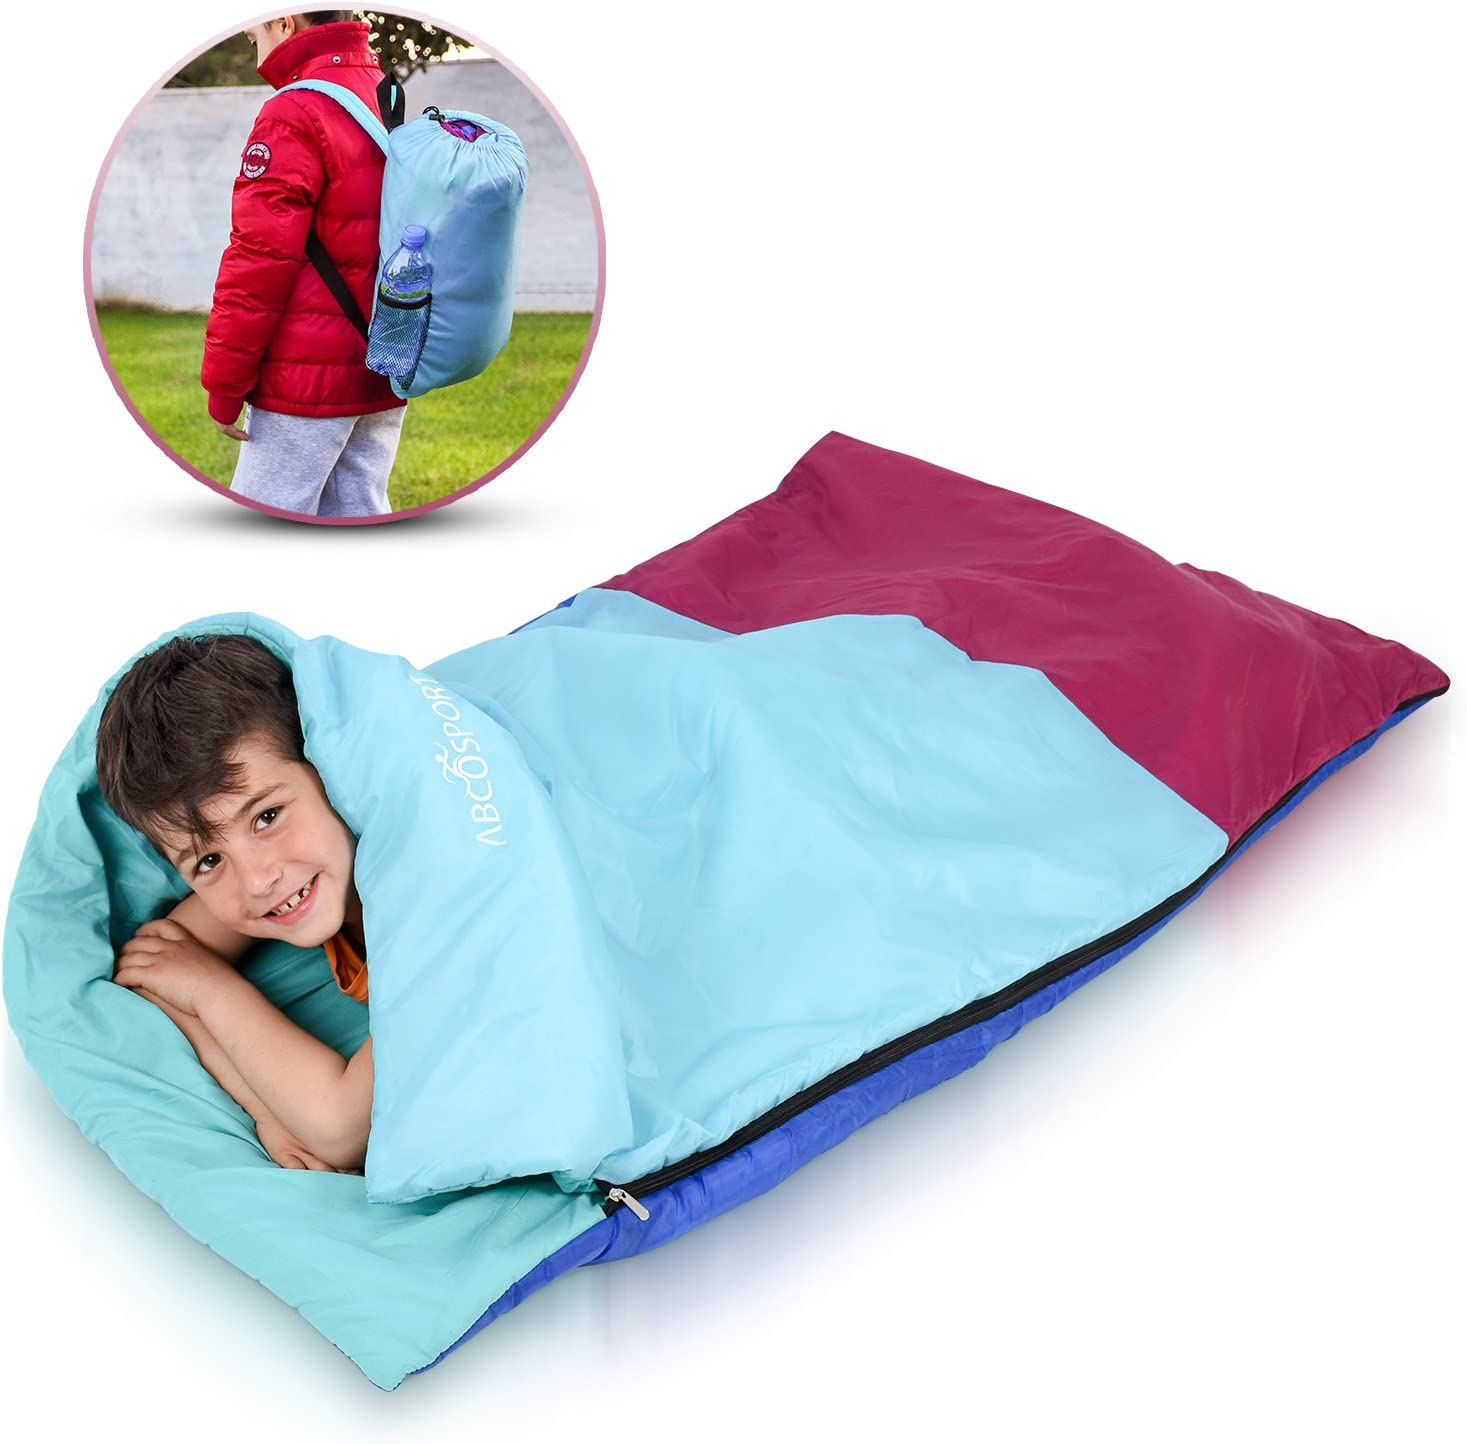 What Is The Best Summer Sleeping Bag To Get